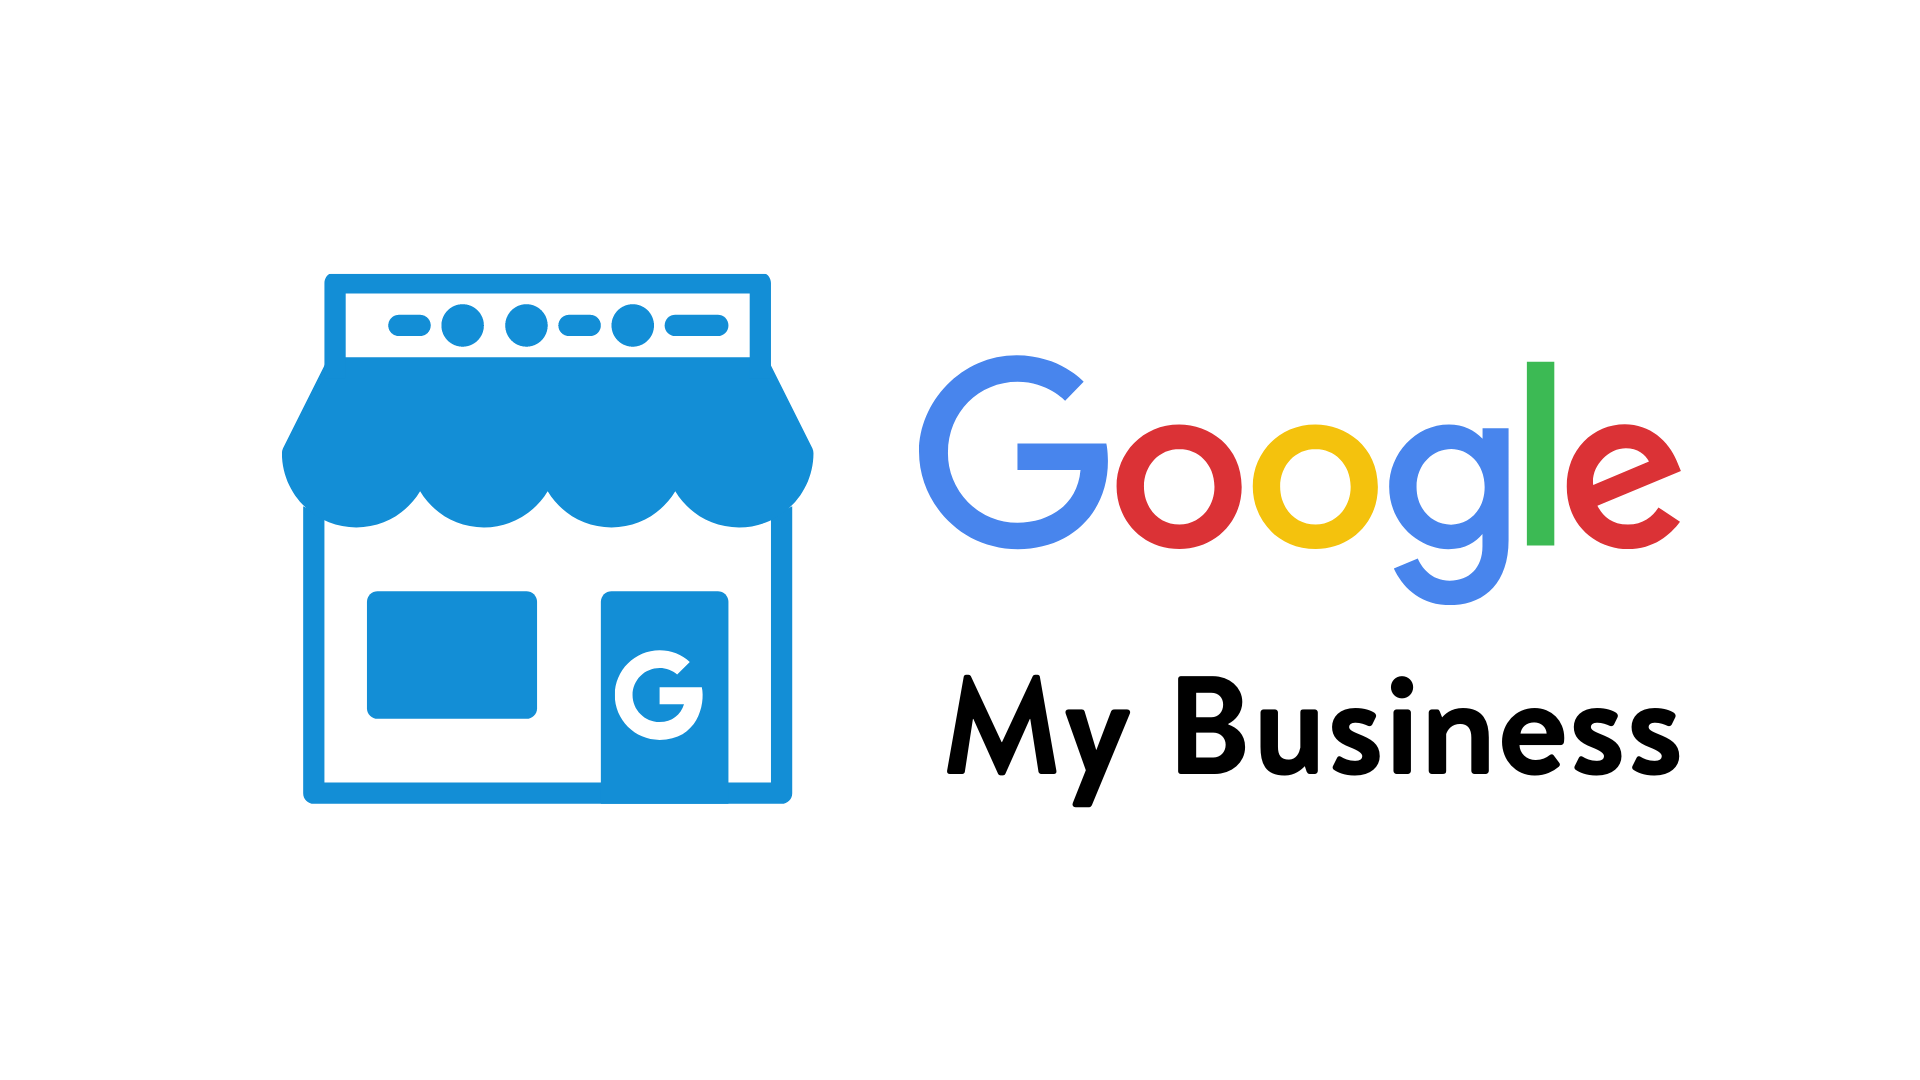 Google My Business is a real hidden gem in the Northern Ireland digital marketing landscape. - NI Marketing Consultant - Tall Paul Marketing